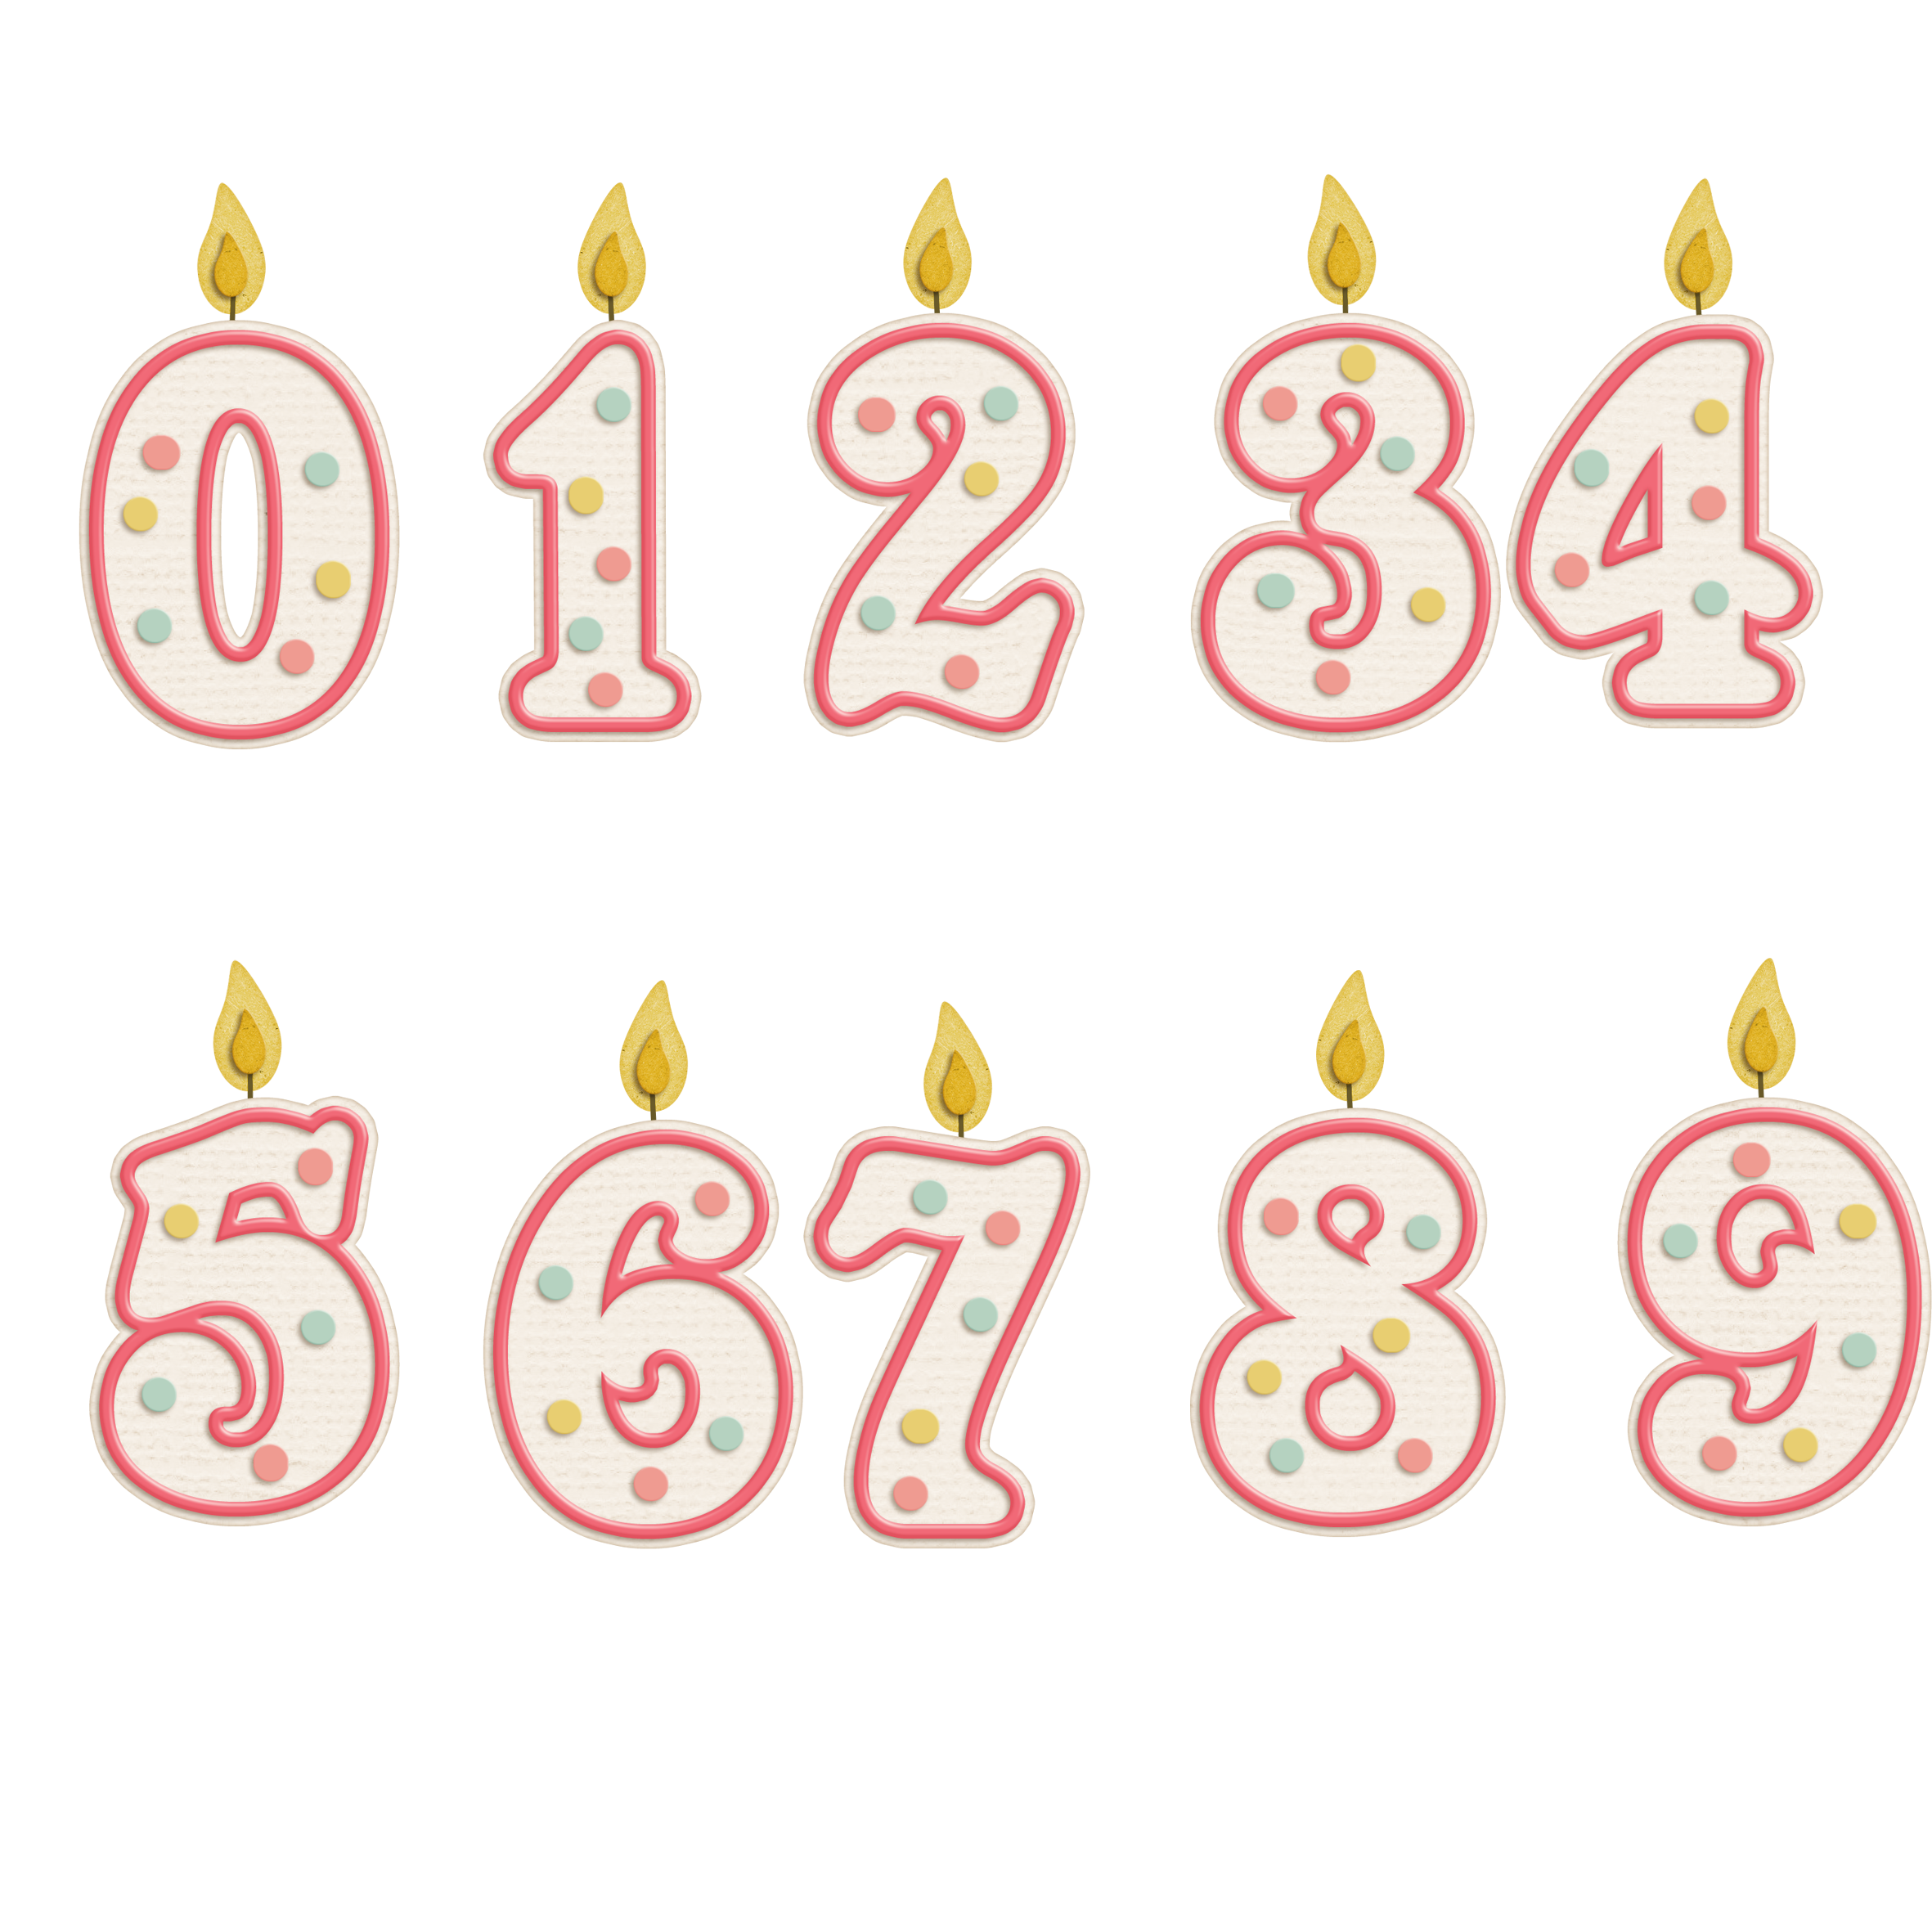 Number candles png. Candle birthday cake transprent